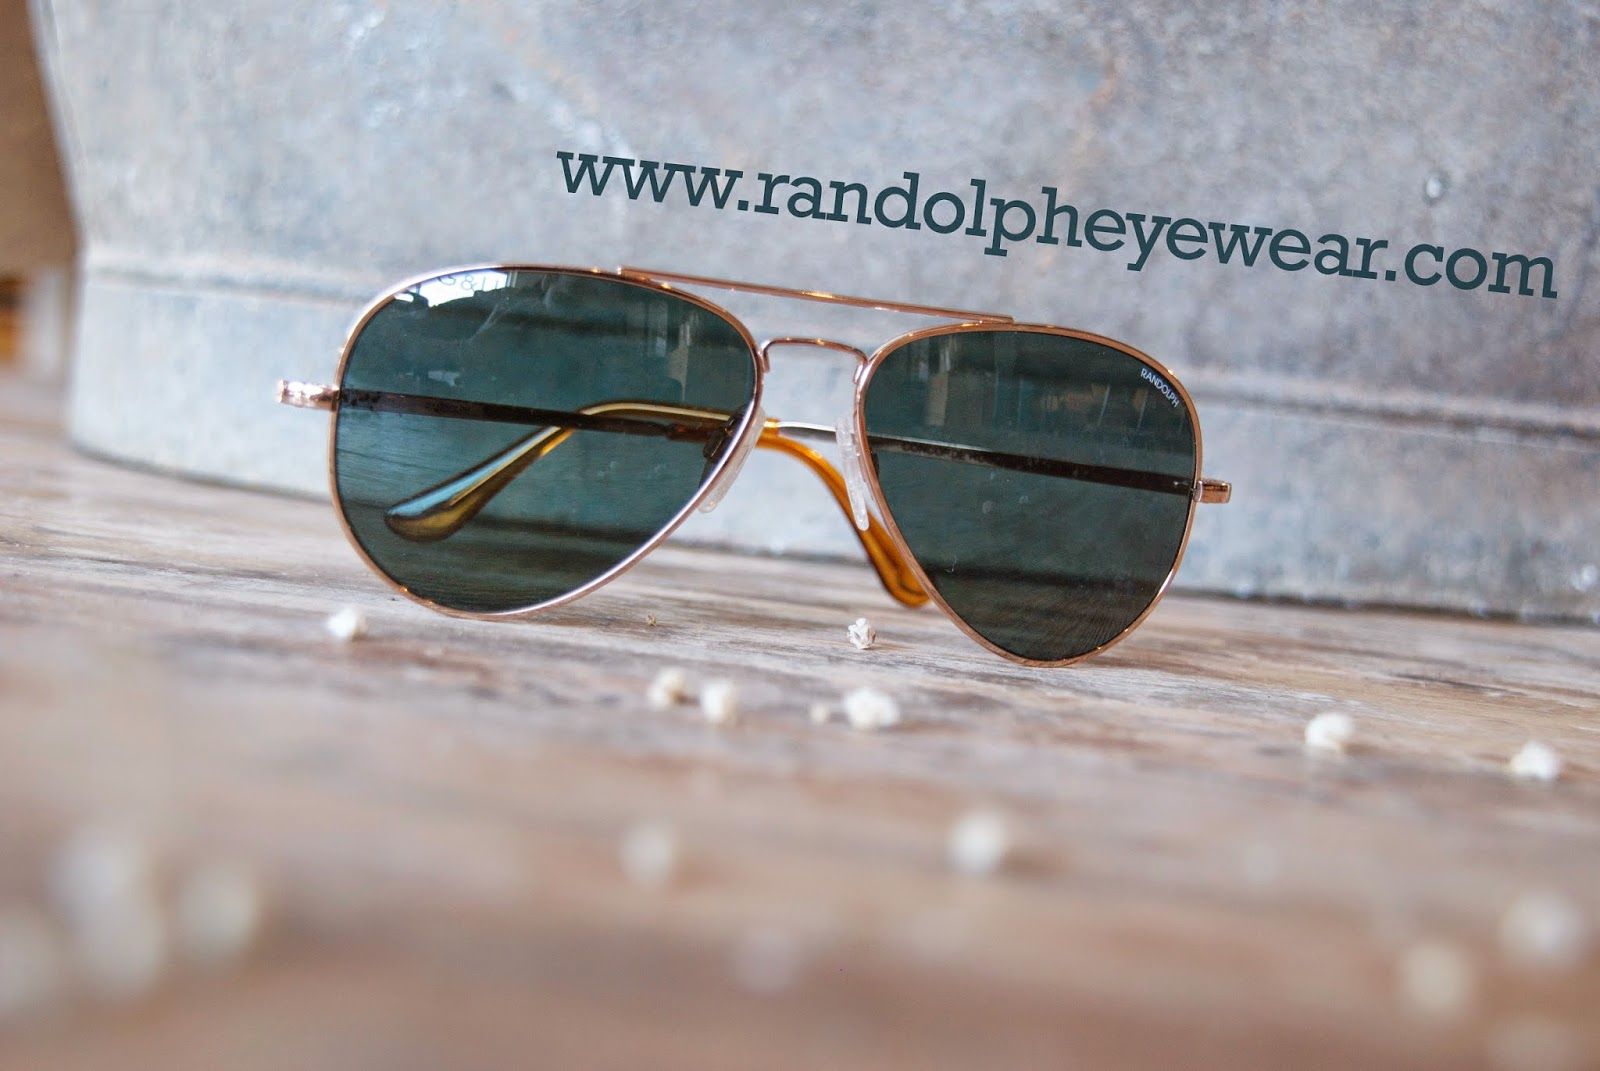 d5e9d4371f They have been working with local and national celebrities and news  campaigns to promote their sunglasses which have also been featured in many  movies and ...